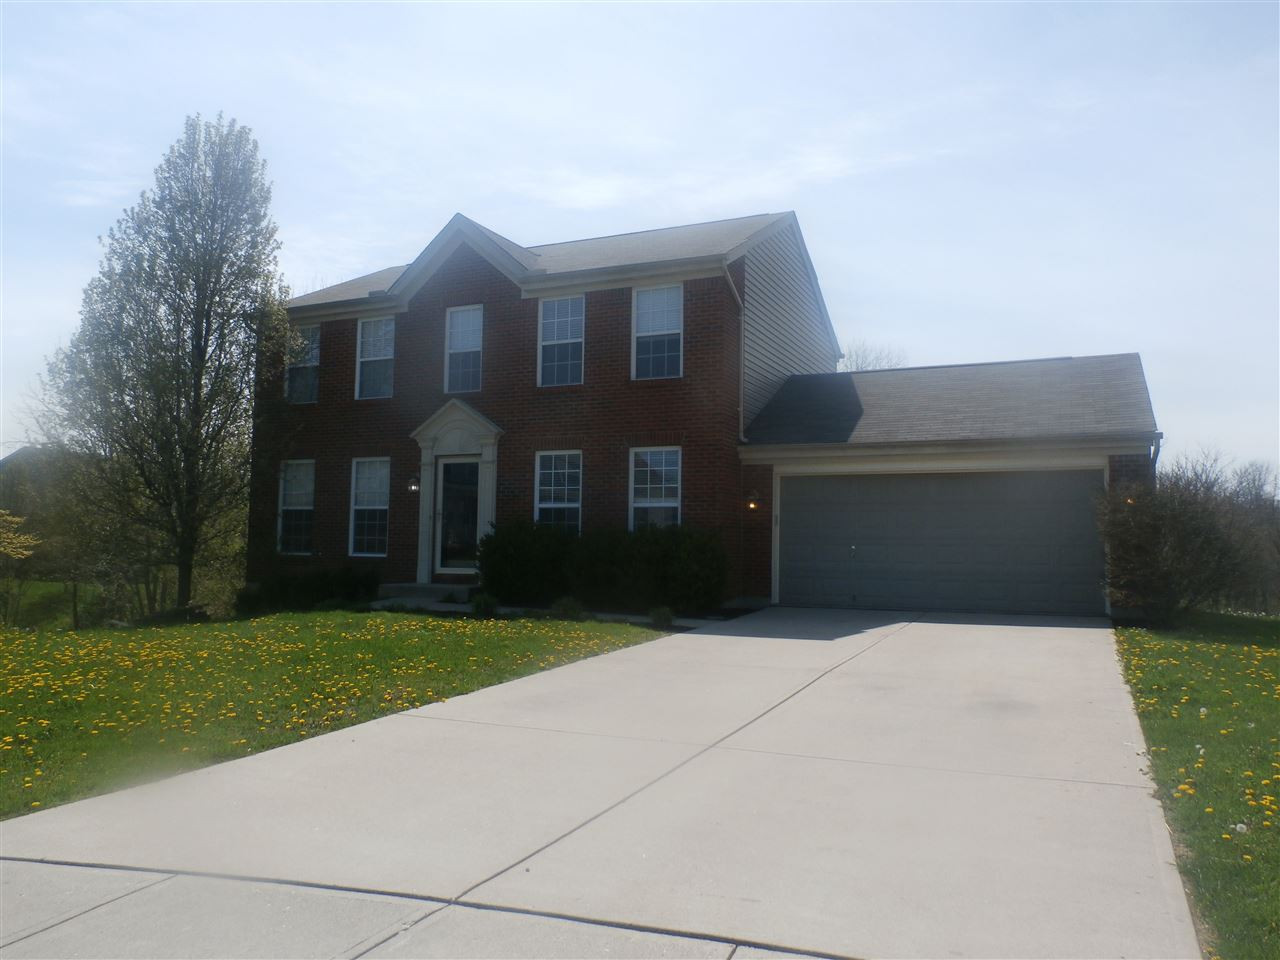 Photo 1 for 500 Walker Ct Walton, KY 41094